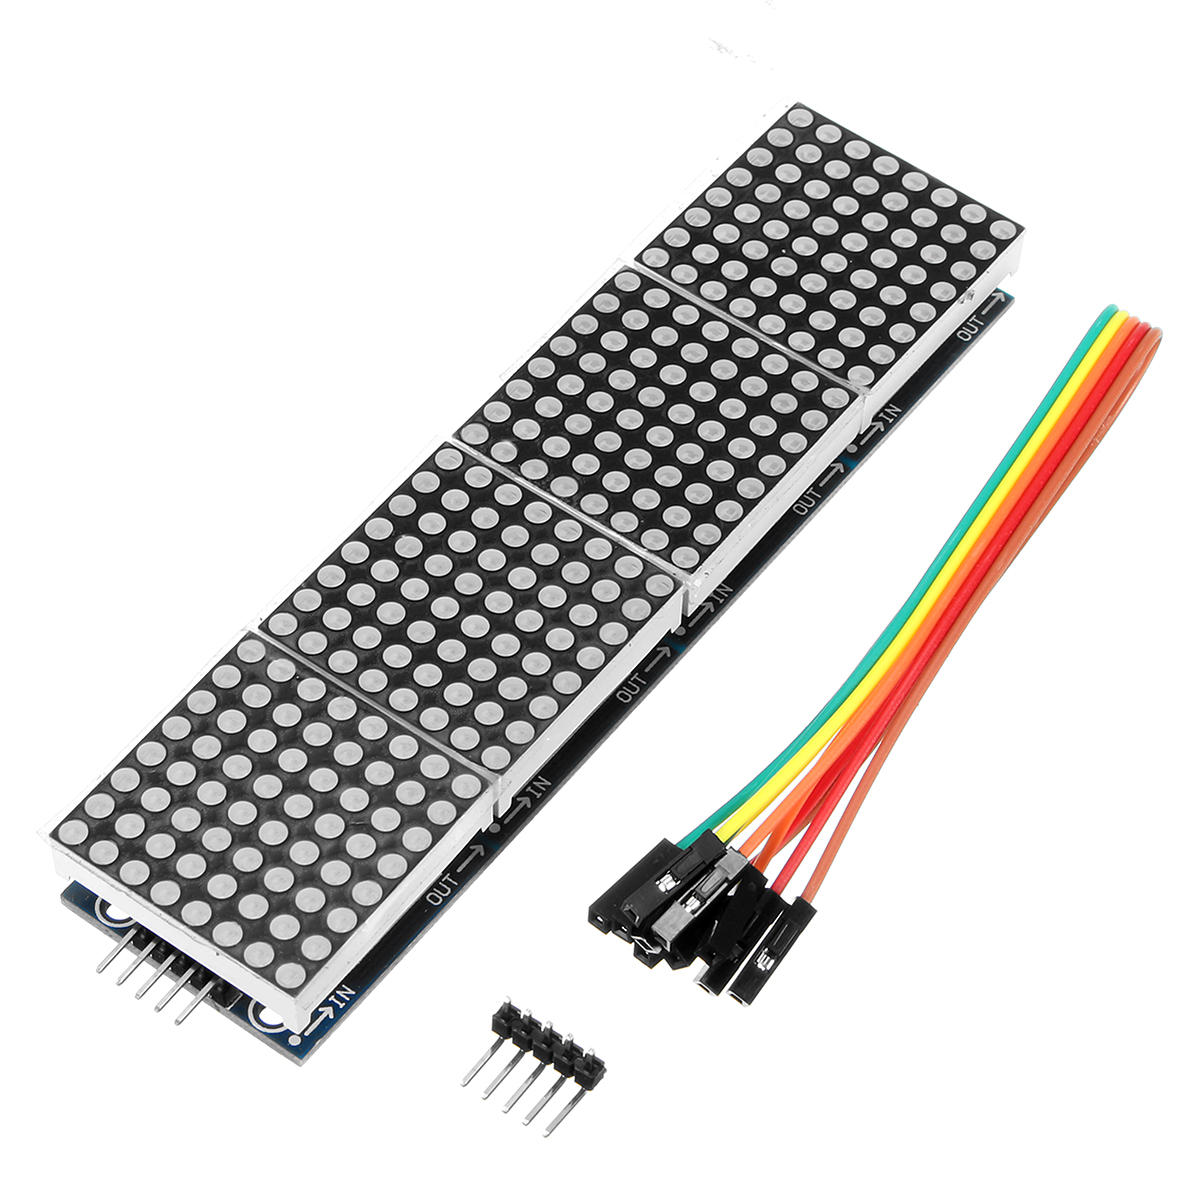 5pcs Geekcreit MAX7219 Dot Matrix LED Display Module 4-in-1 Display Geekcreit for Arduino - products that work with offi фото